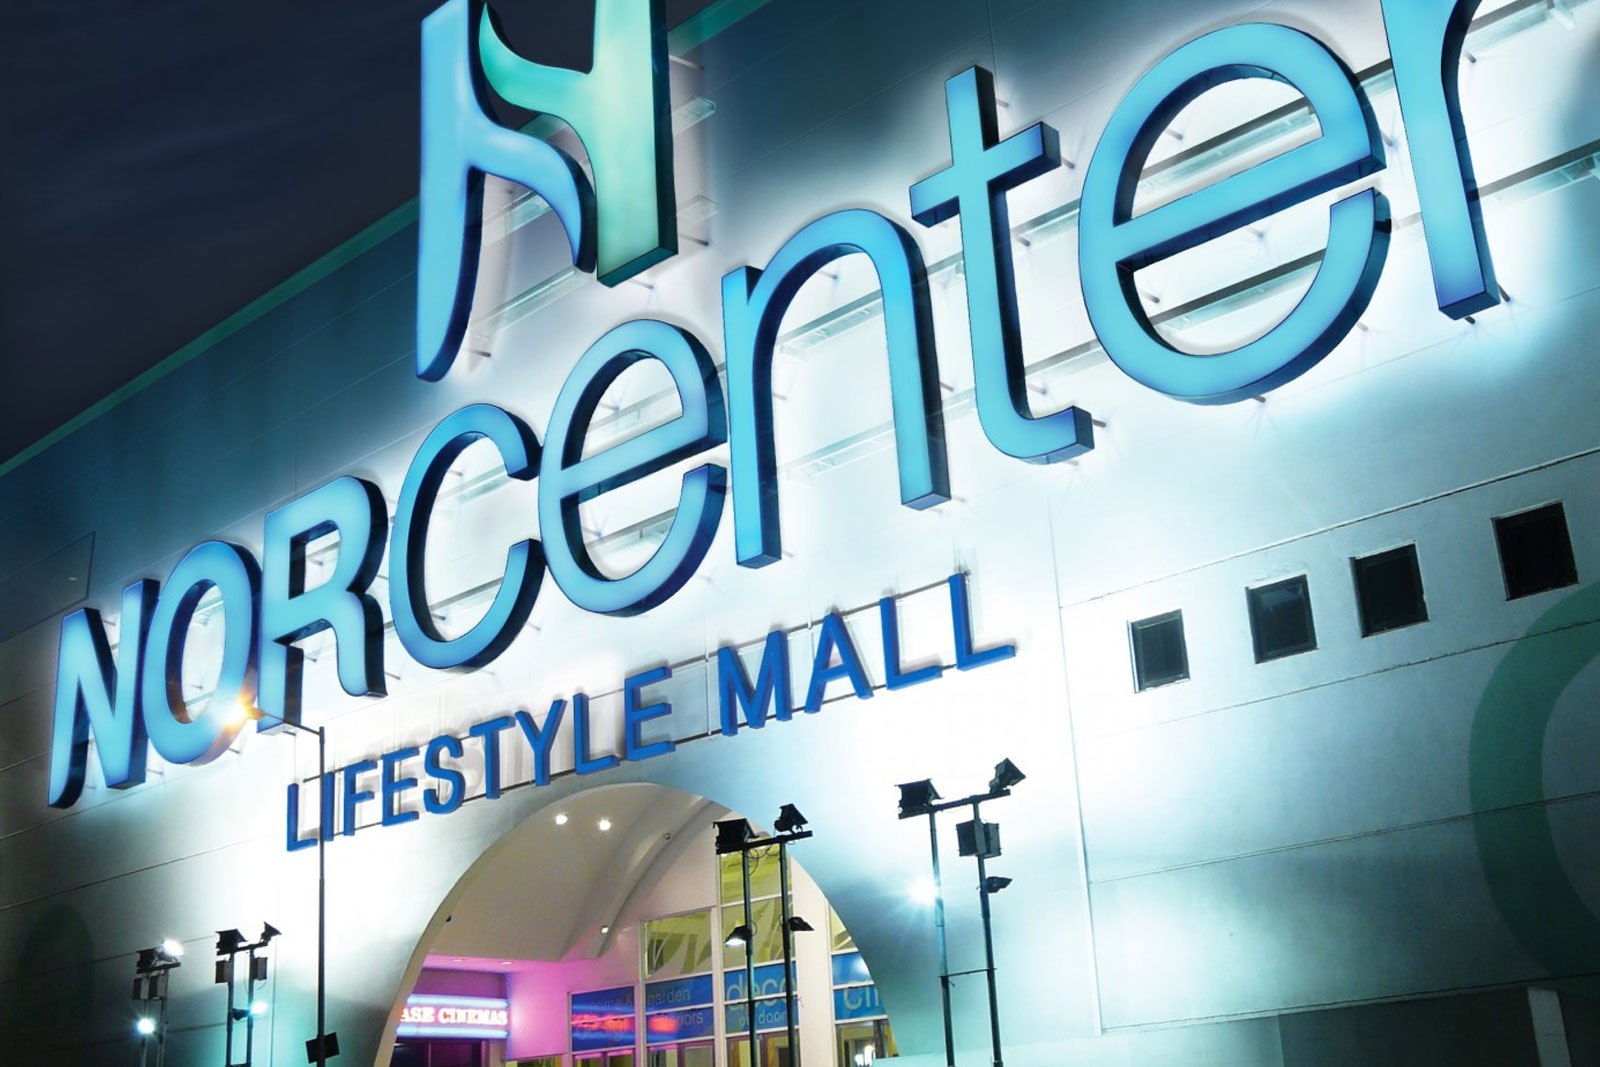 Norcenter Lifestyle Mall - Cuzzuol